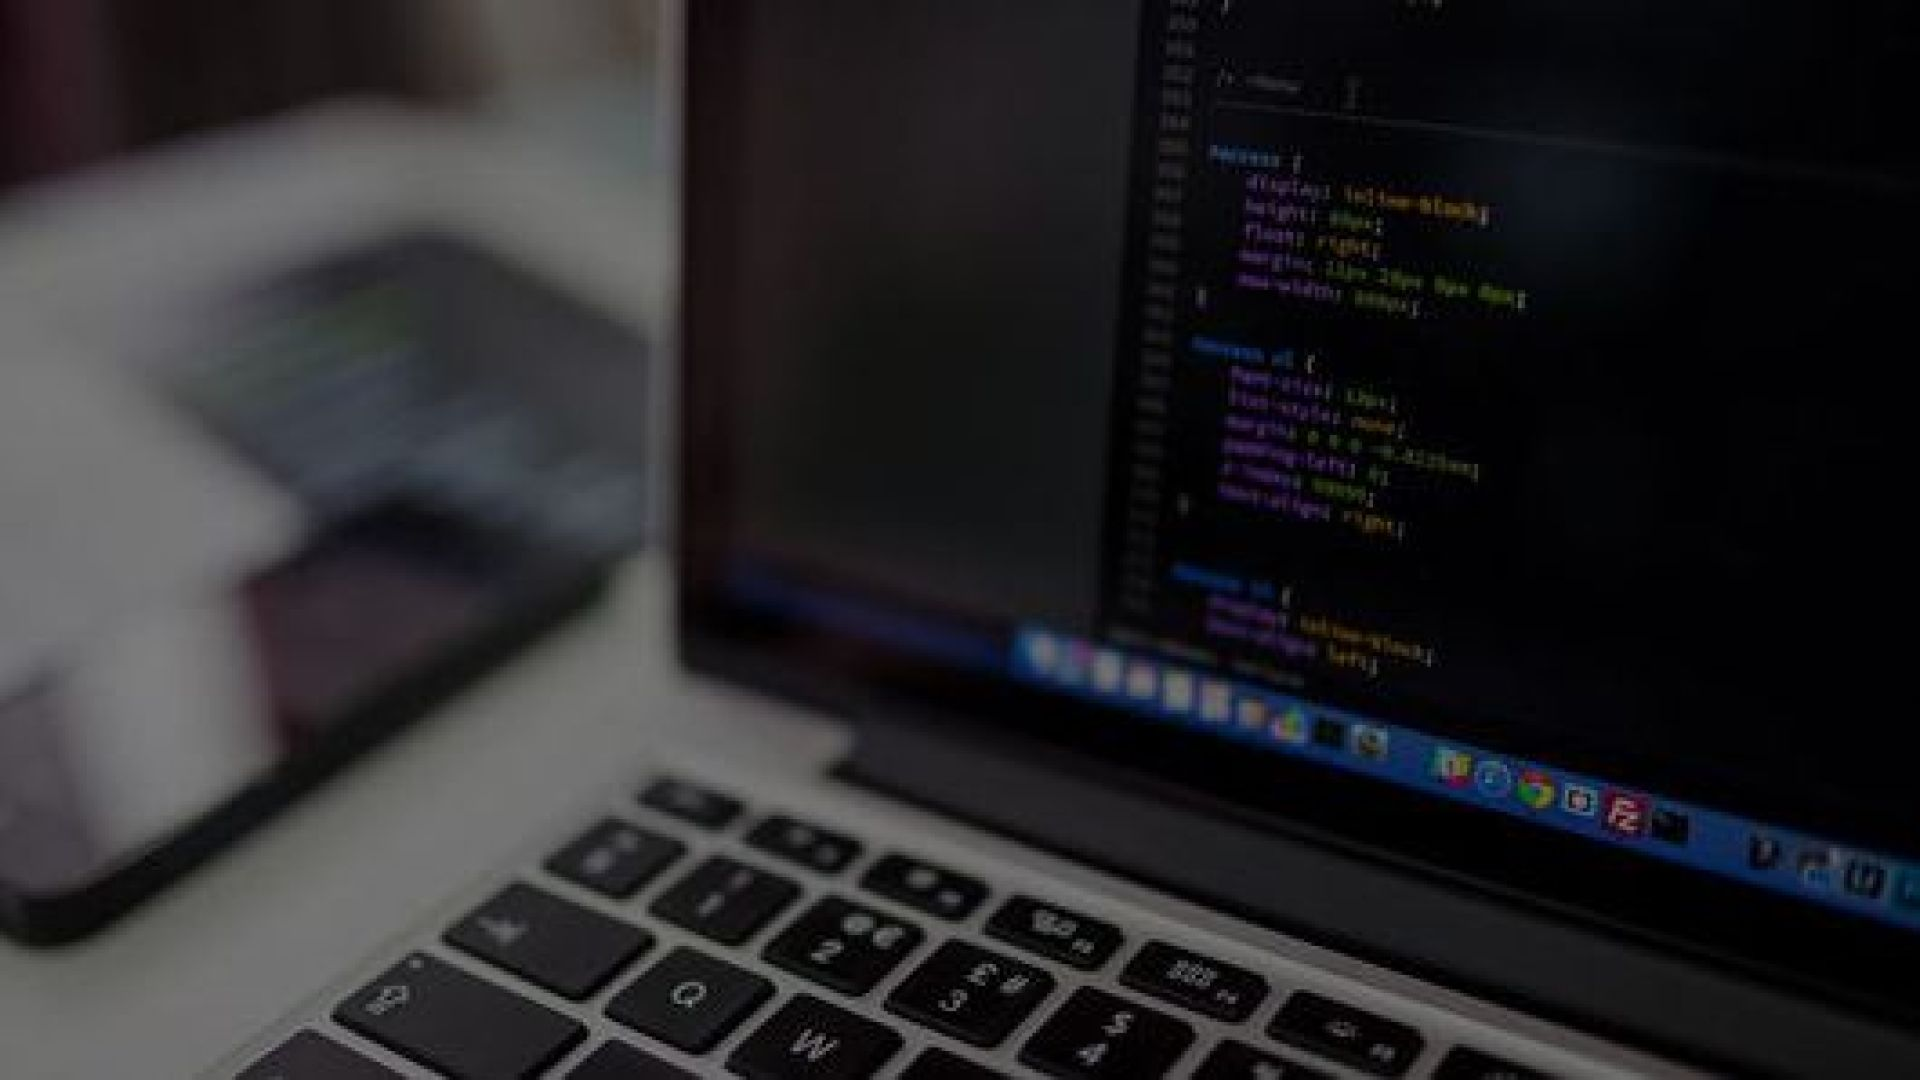 Take your web development skills to new heights